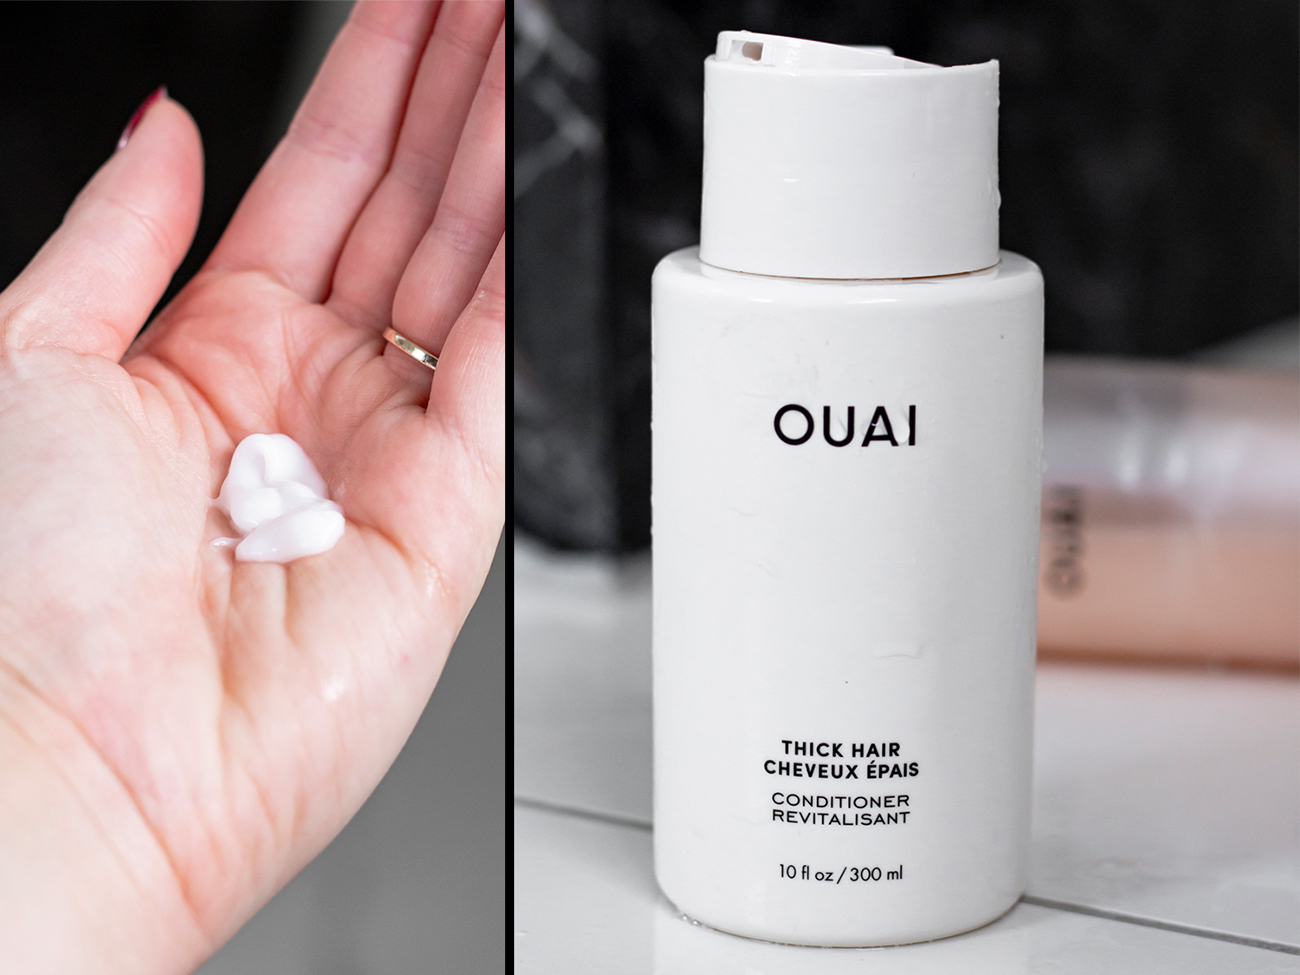 OUAI Thick Hair Conditioner review - As Seen by Alex